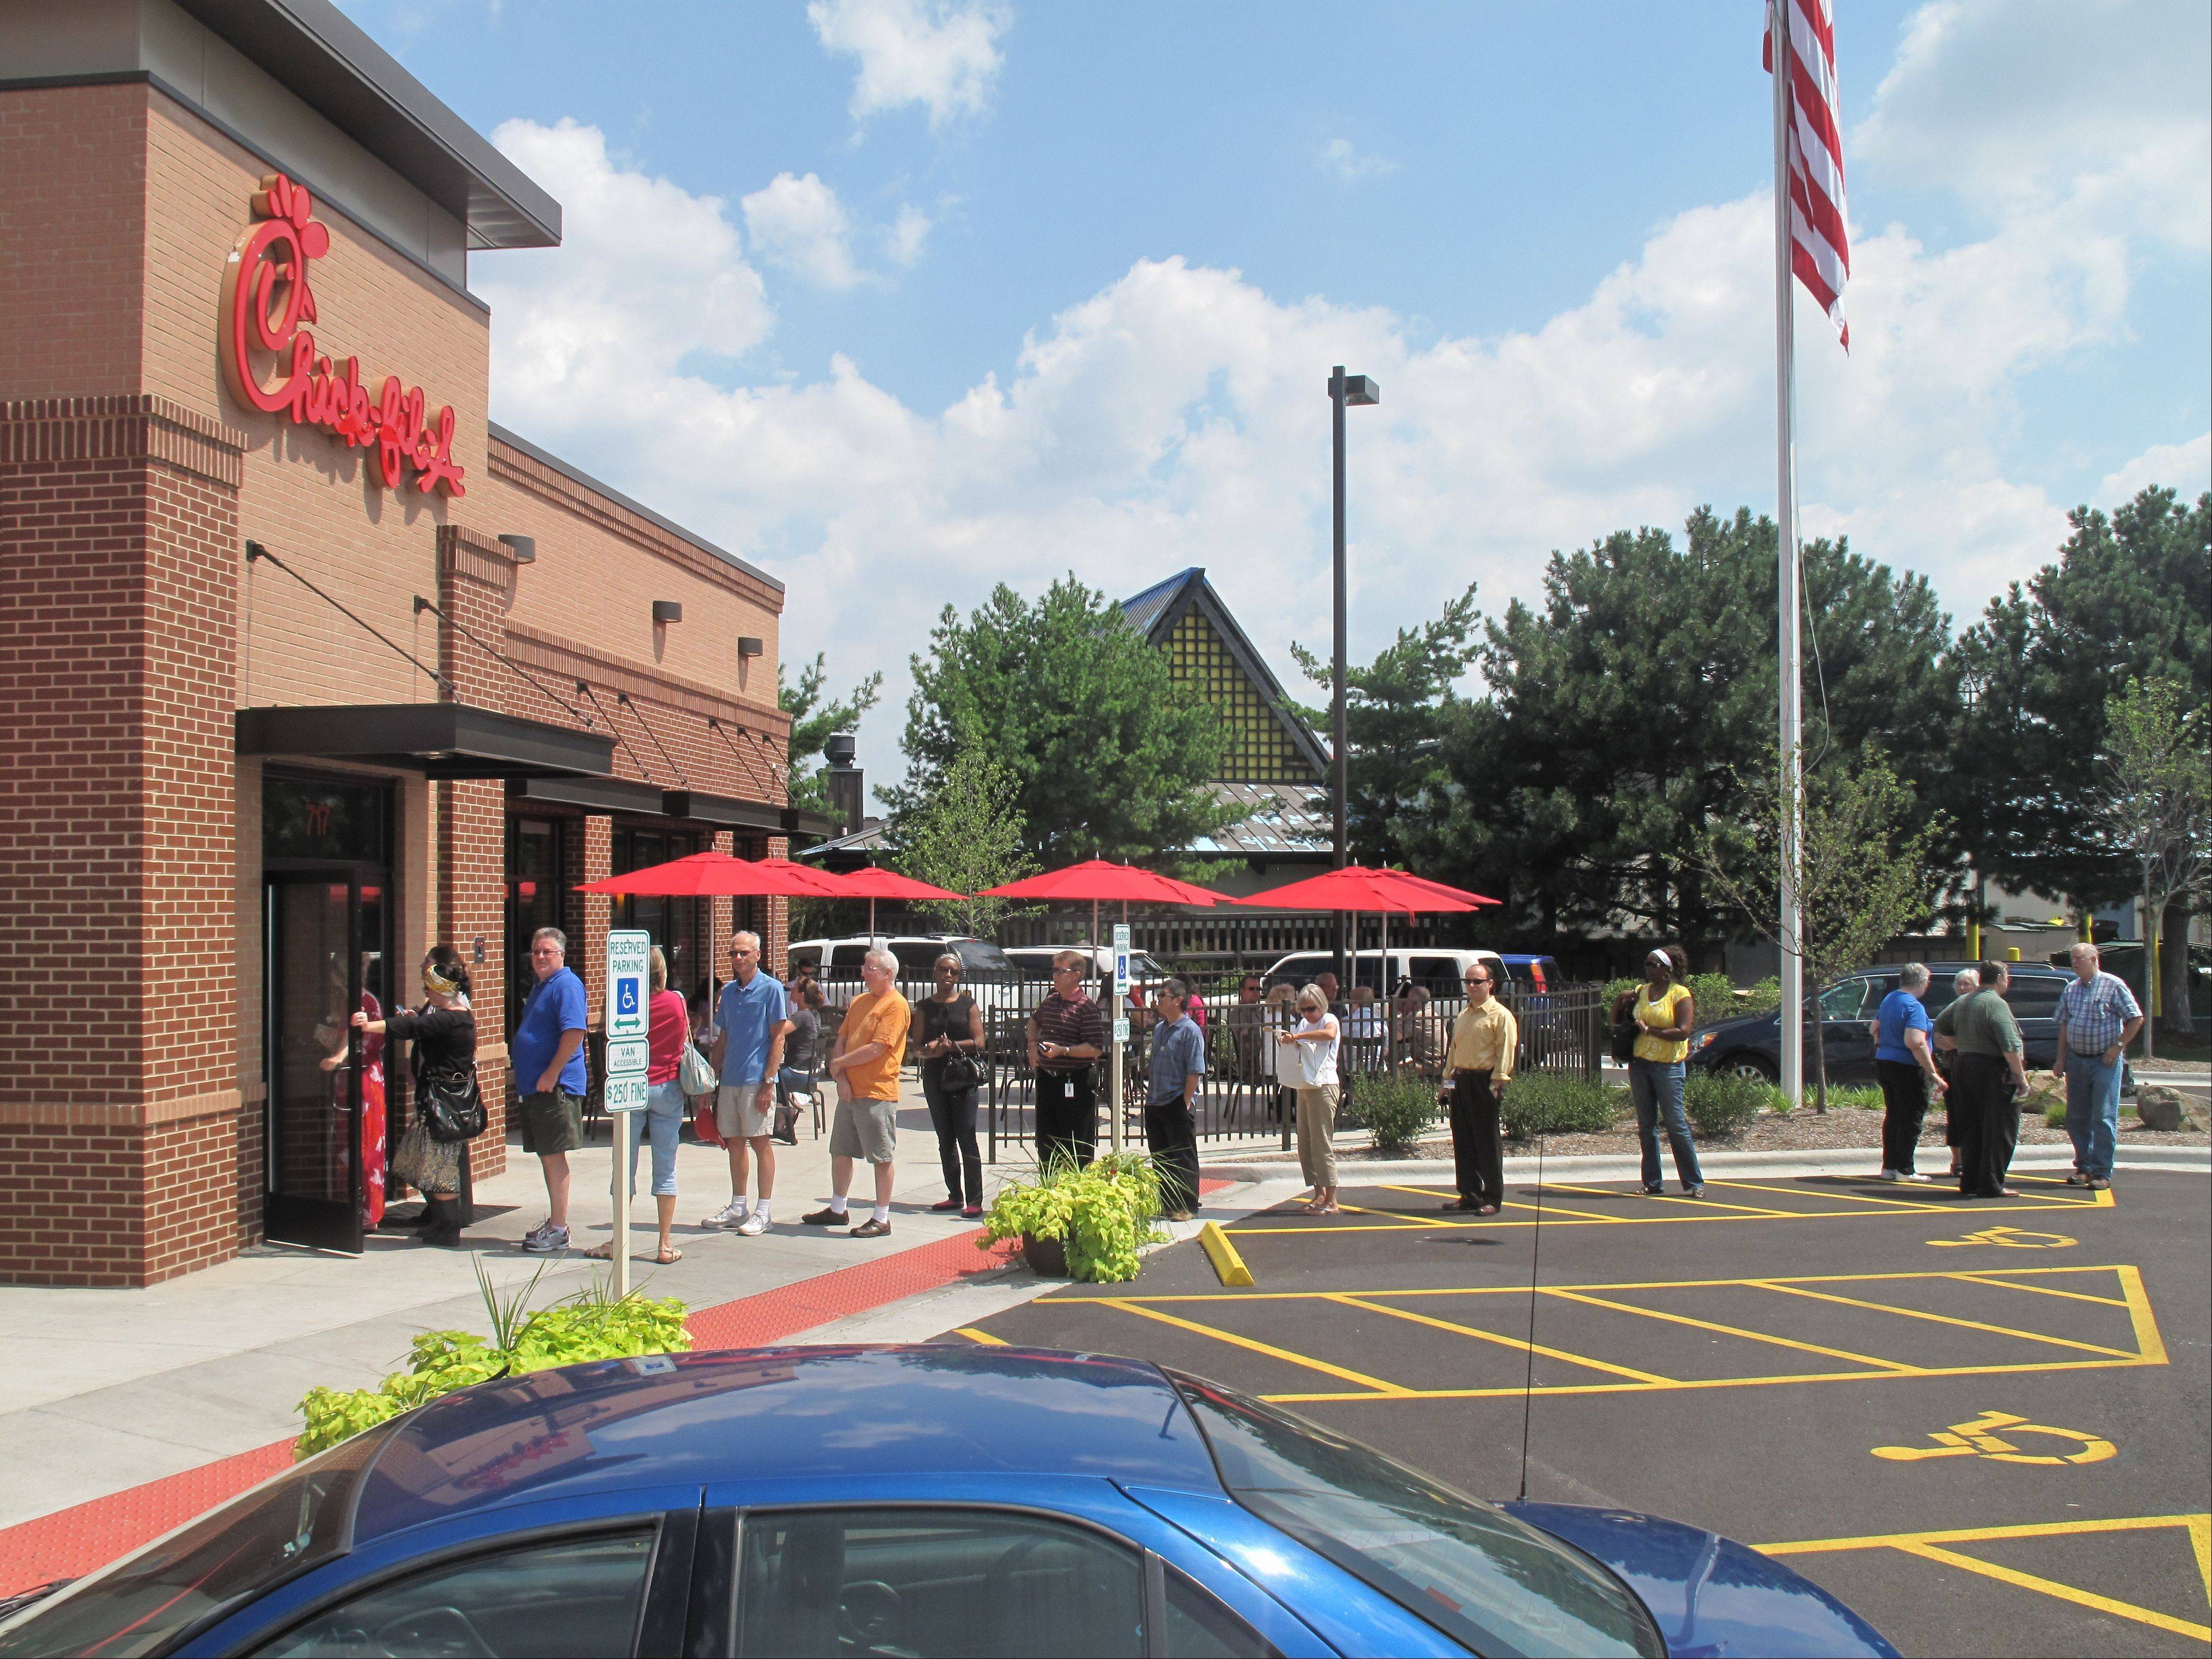 Customers turned out in Lombard for Chick-fil-A appreciation day after the company's president came under attack for his outspoken opposition to gay marriage.